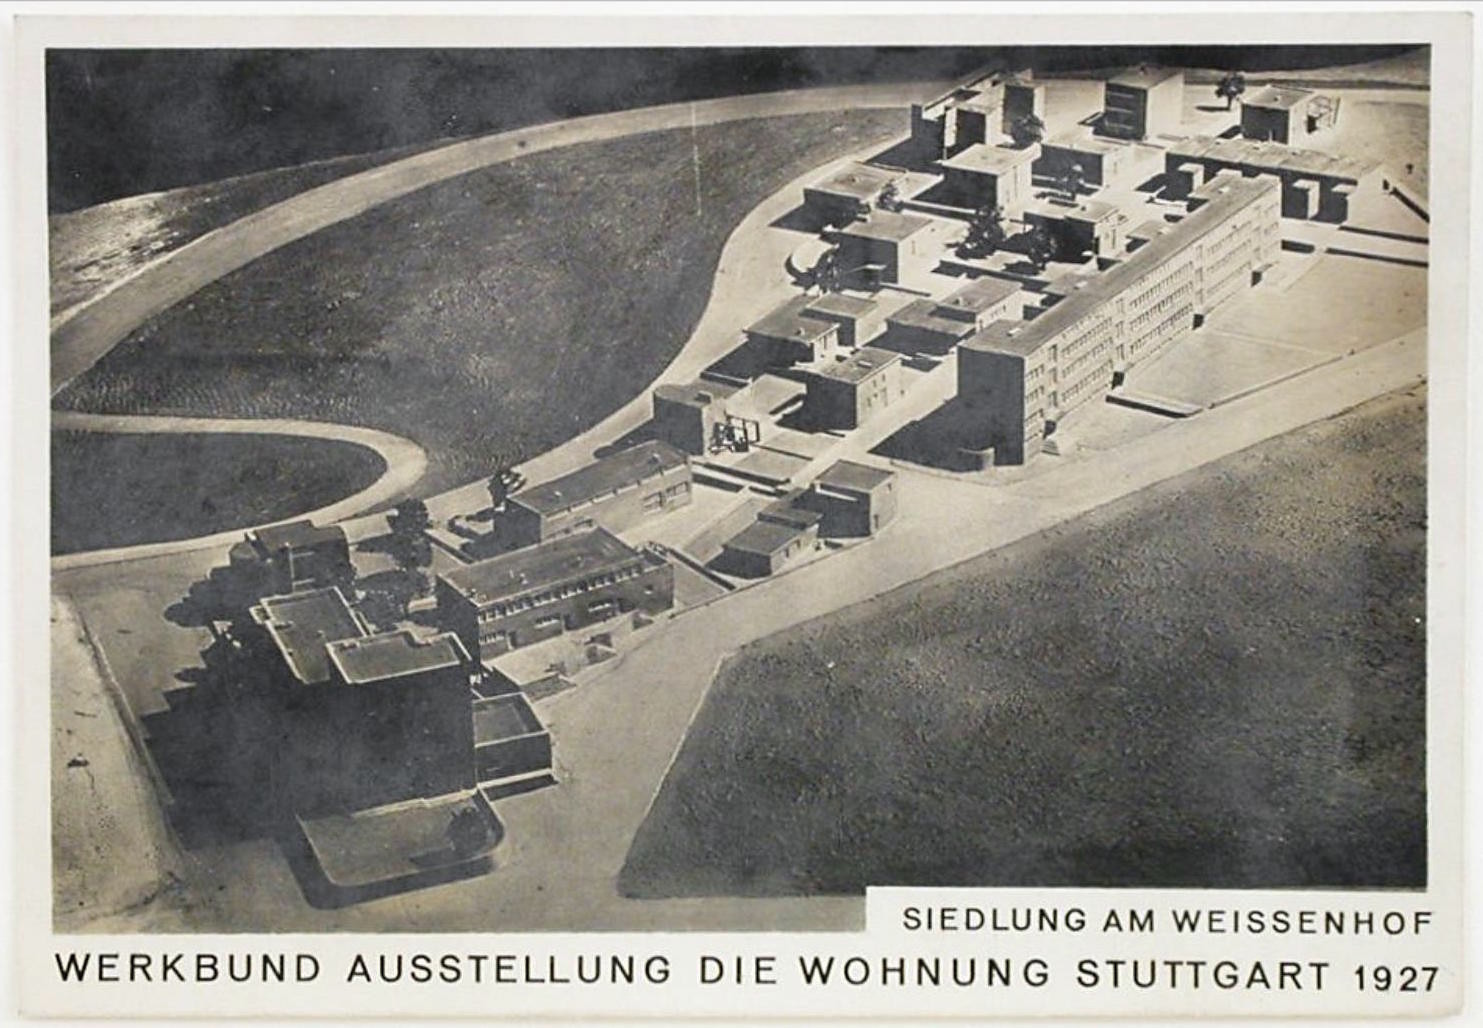 Unknown Photograph of a model of Weissenhofsiedlung, Stuttgart, Germany 1926 or later